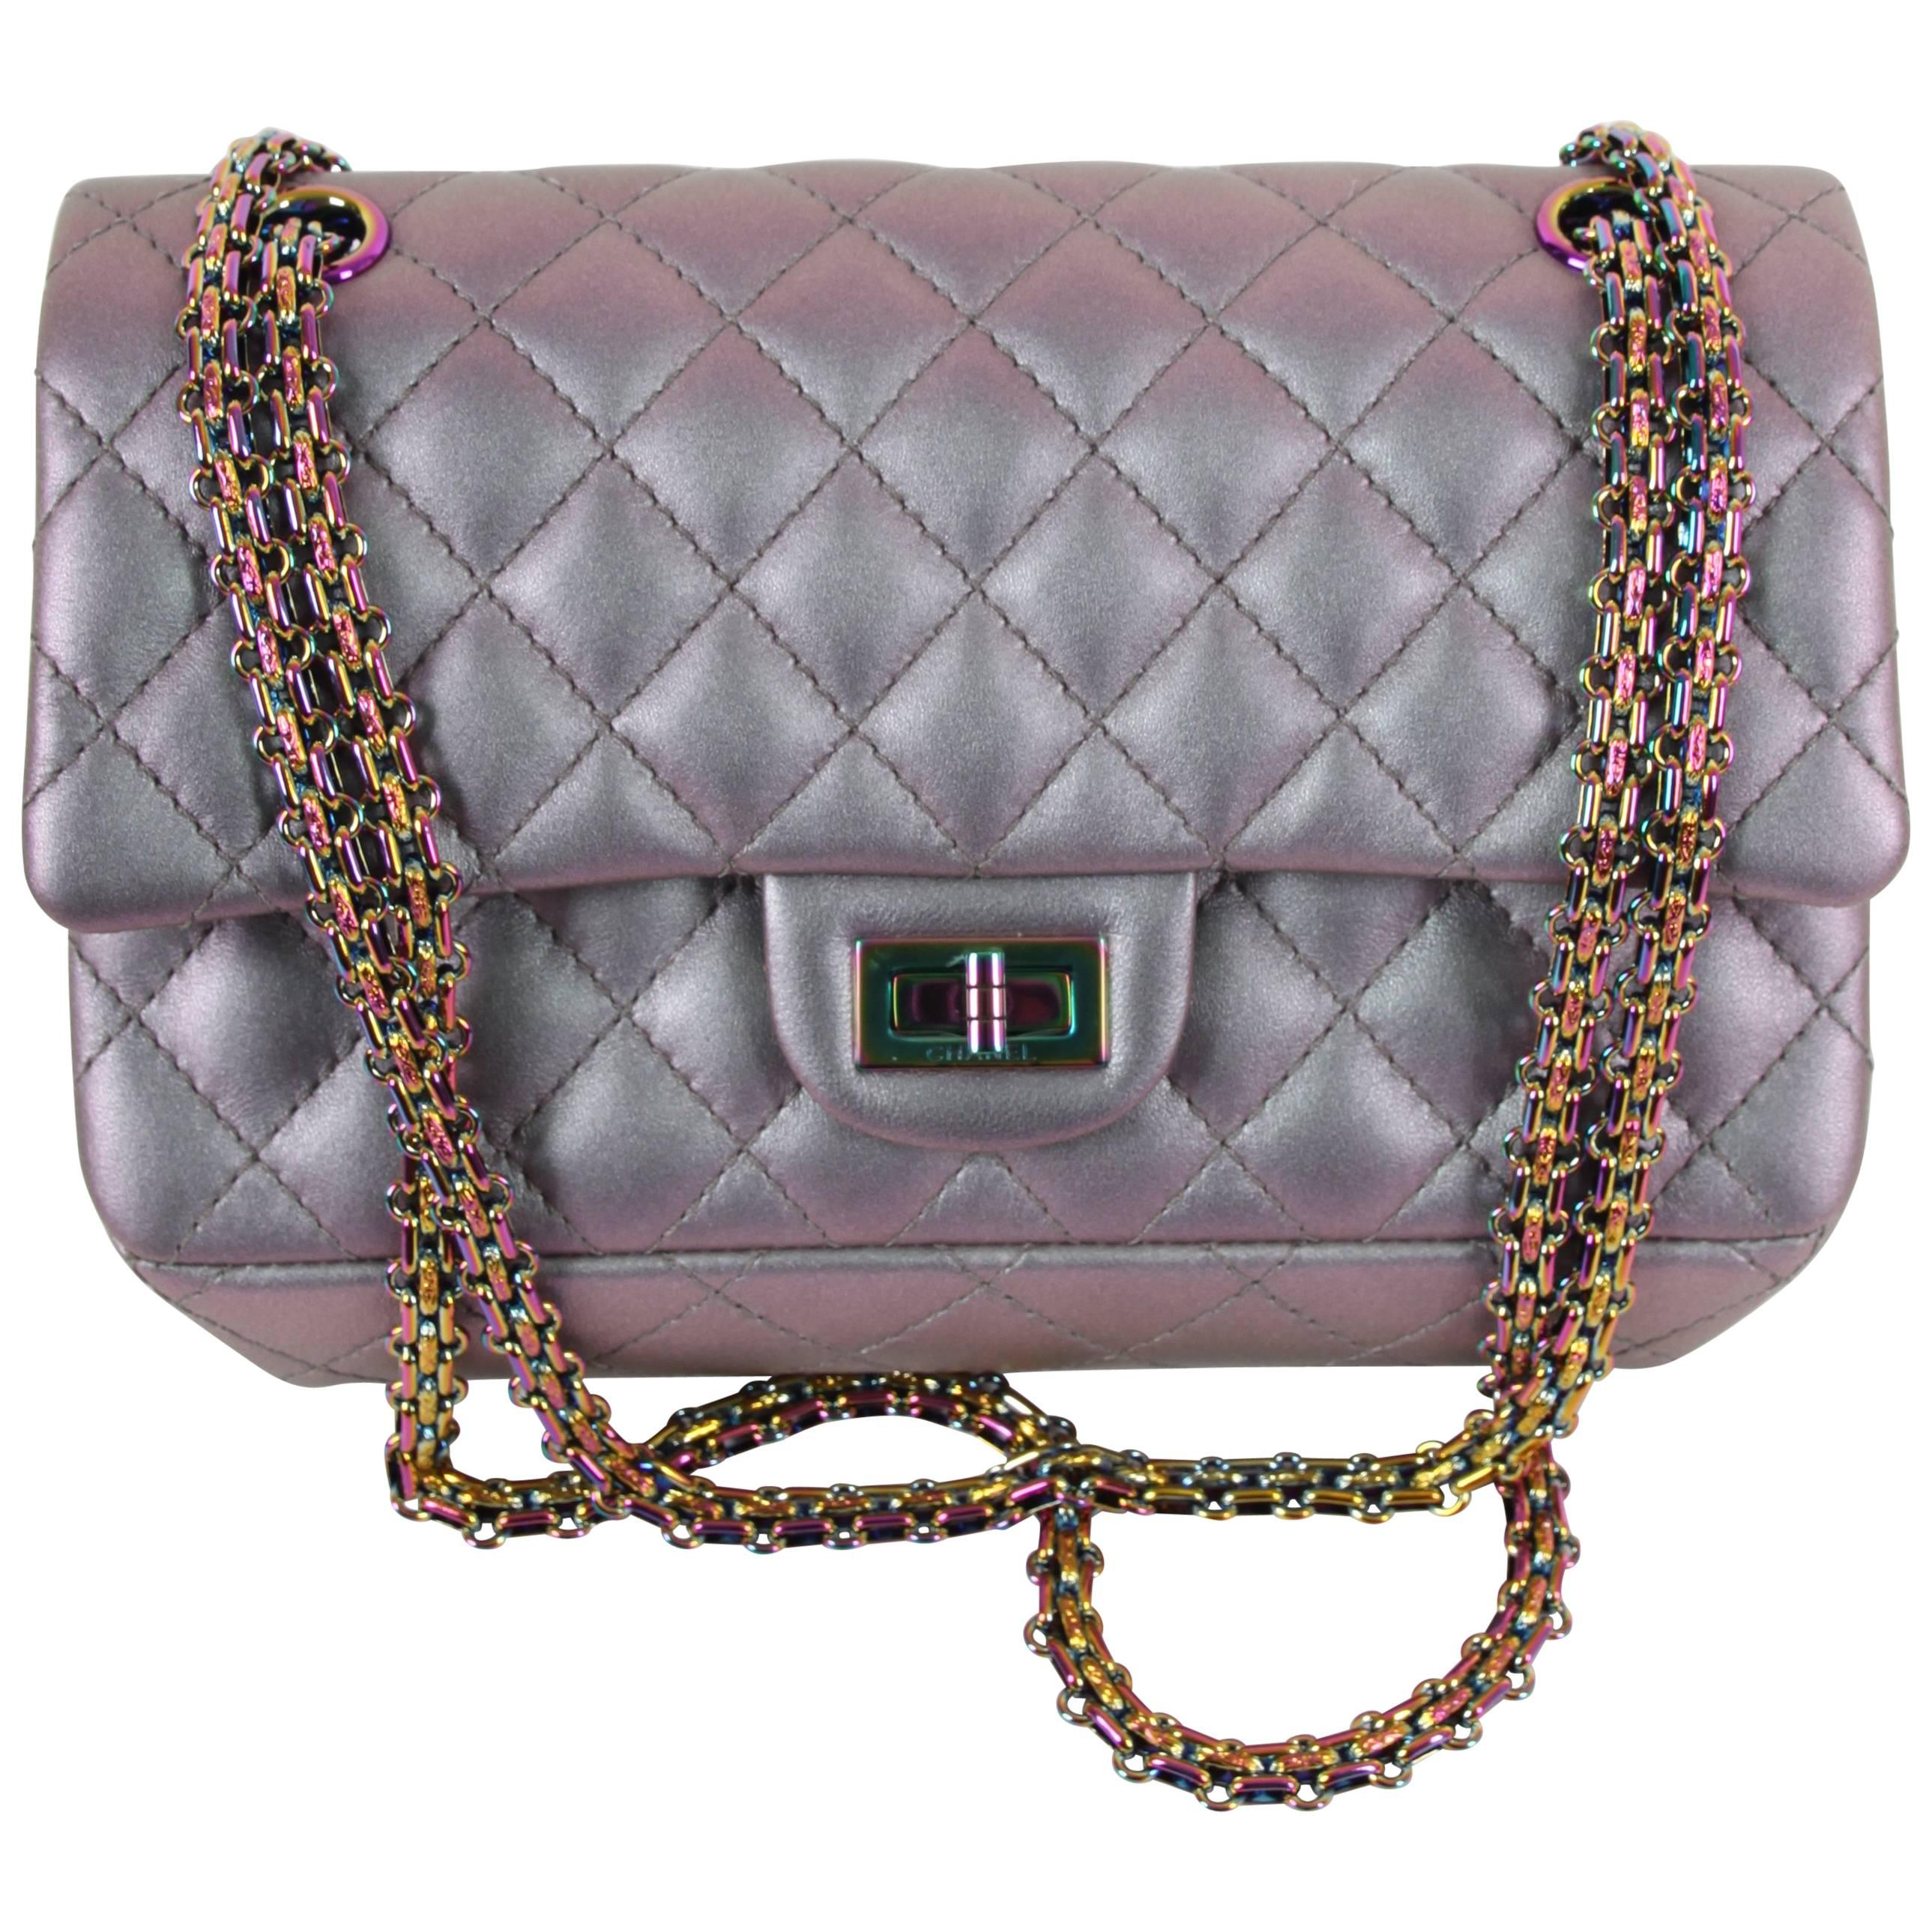 31749fa11d9b Chanel Medium 2.55 Reissue Double Flap Bag - Lilac Iridescent Mermaid at  1stdibs